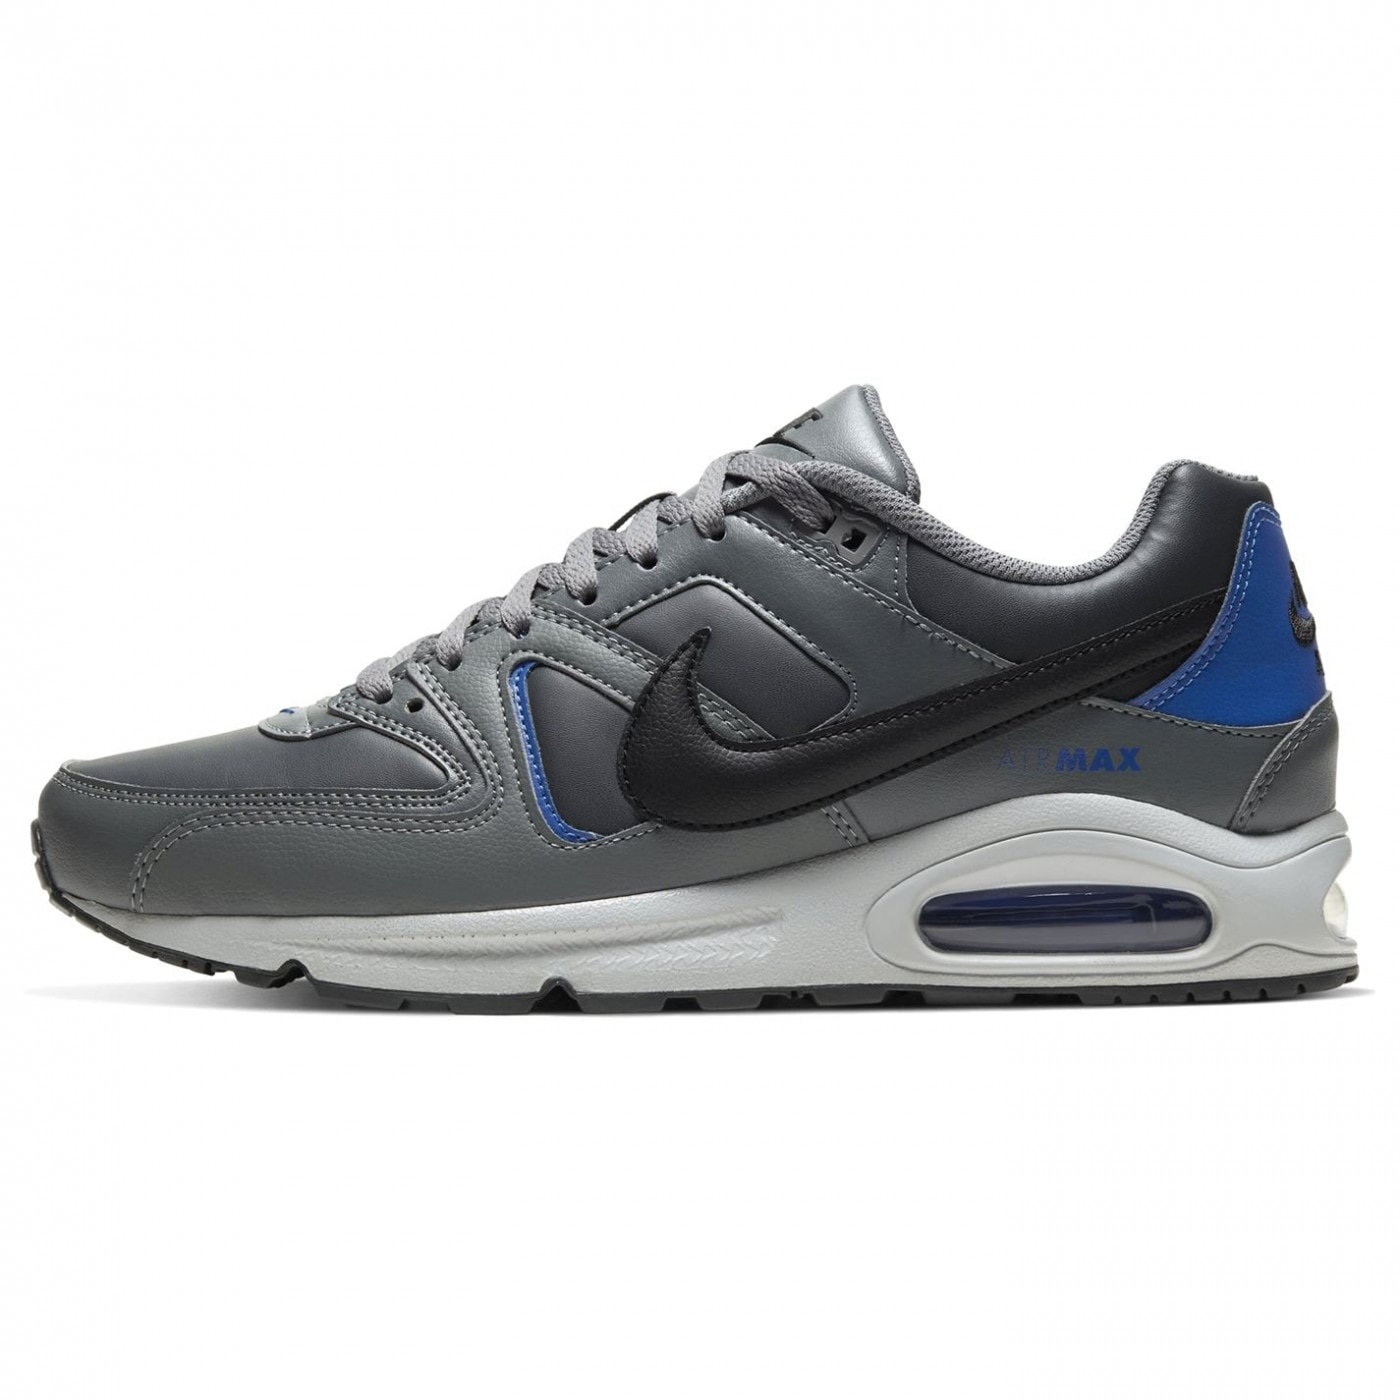 Men's trainers Nike Air Max Command Leather